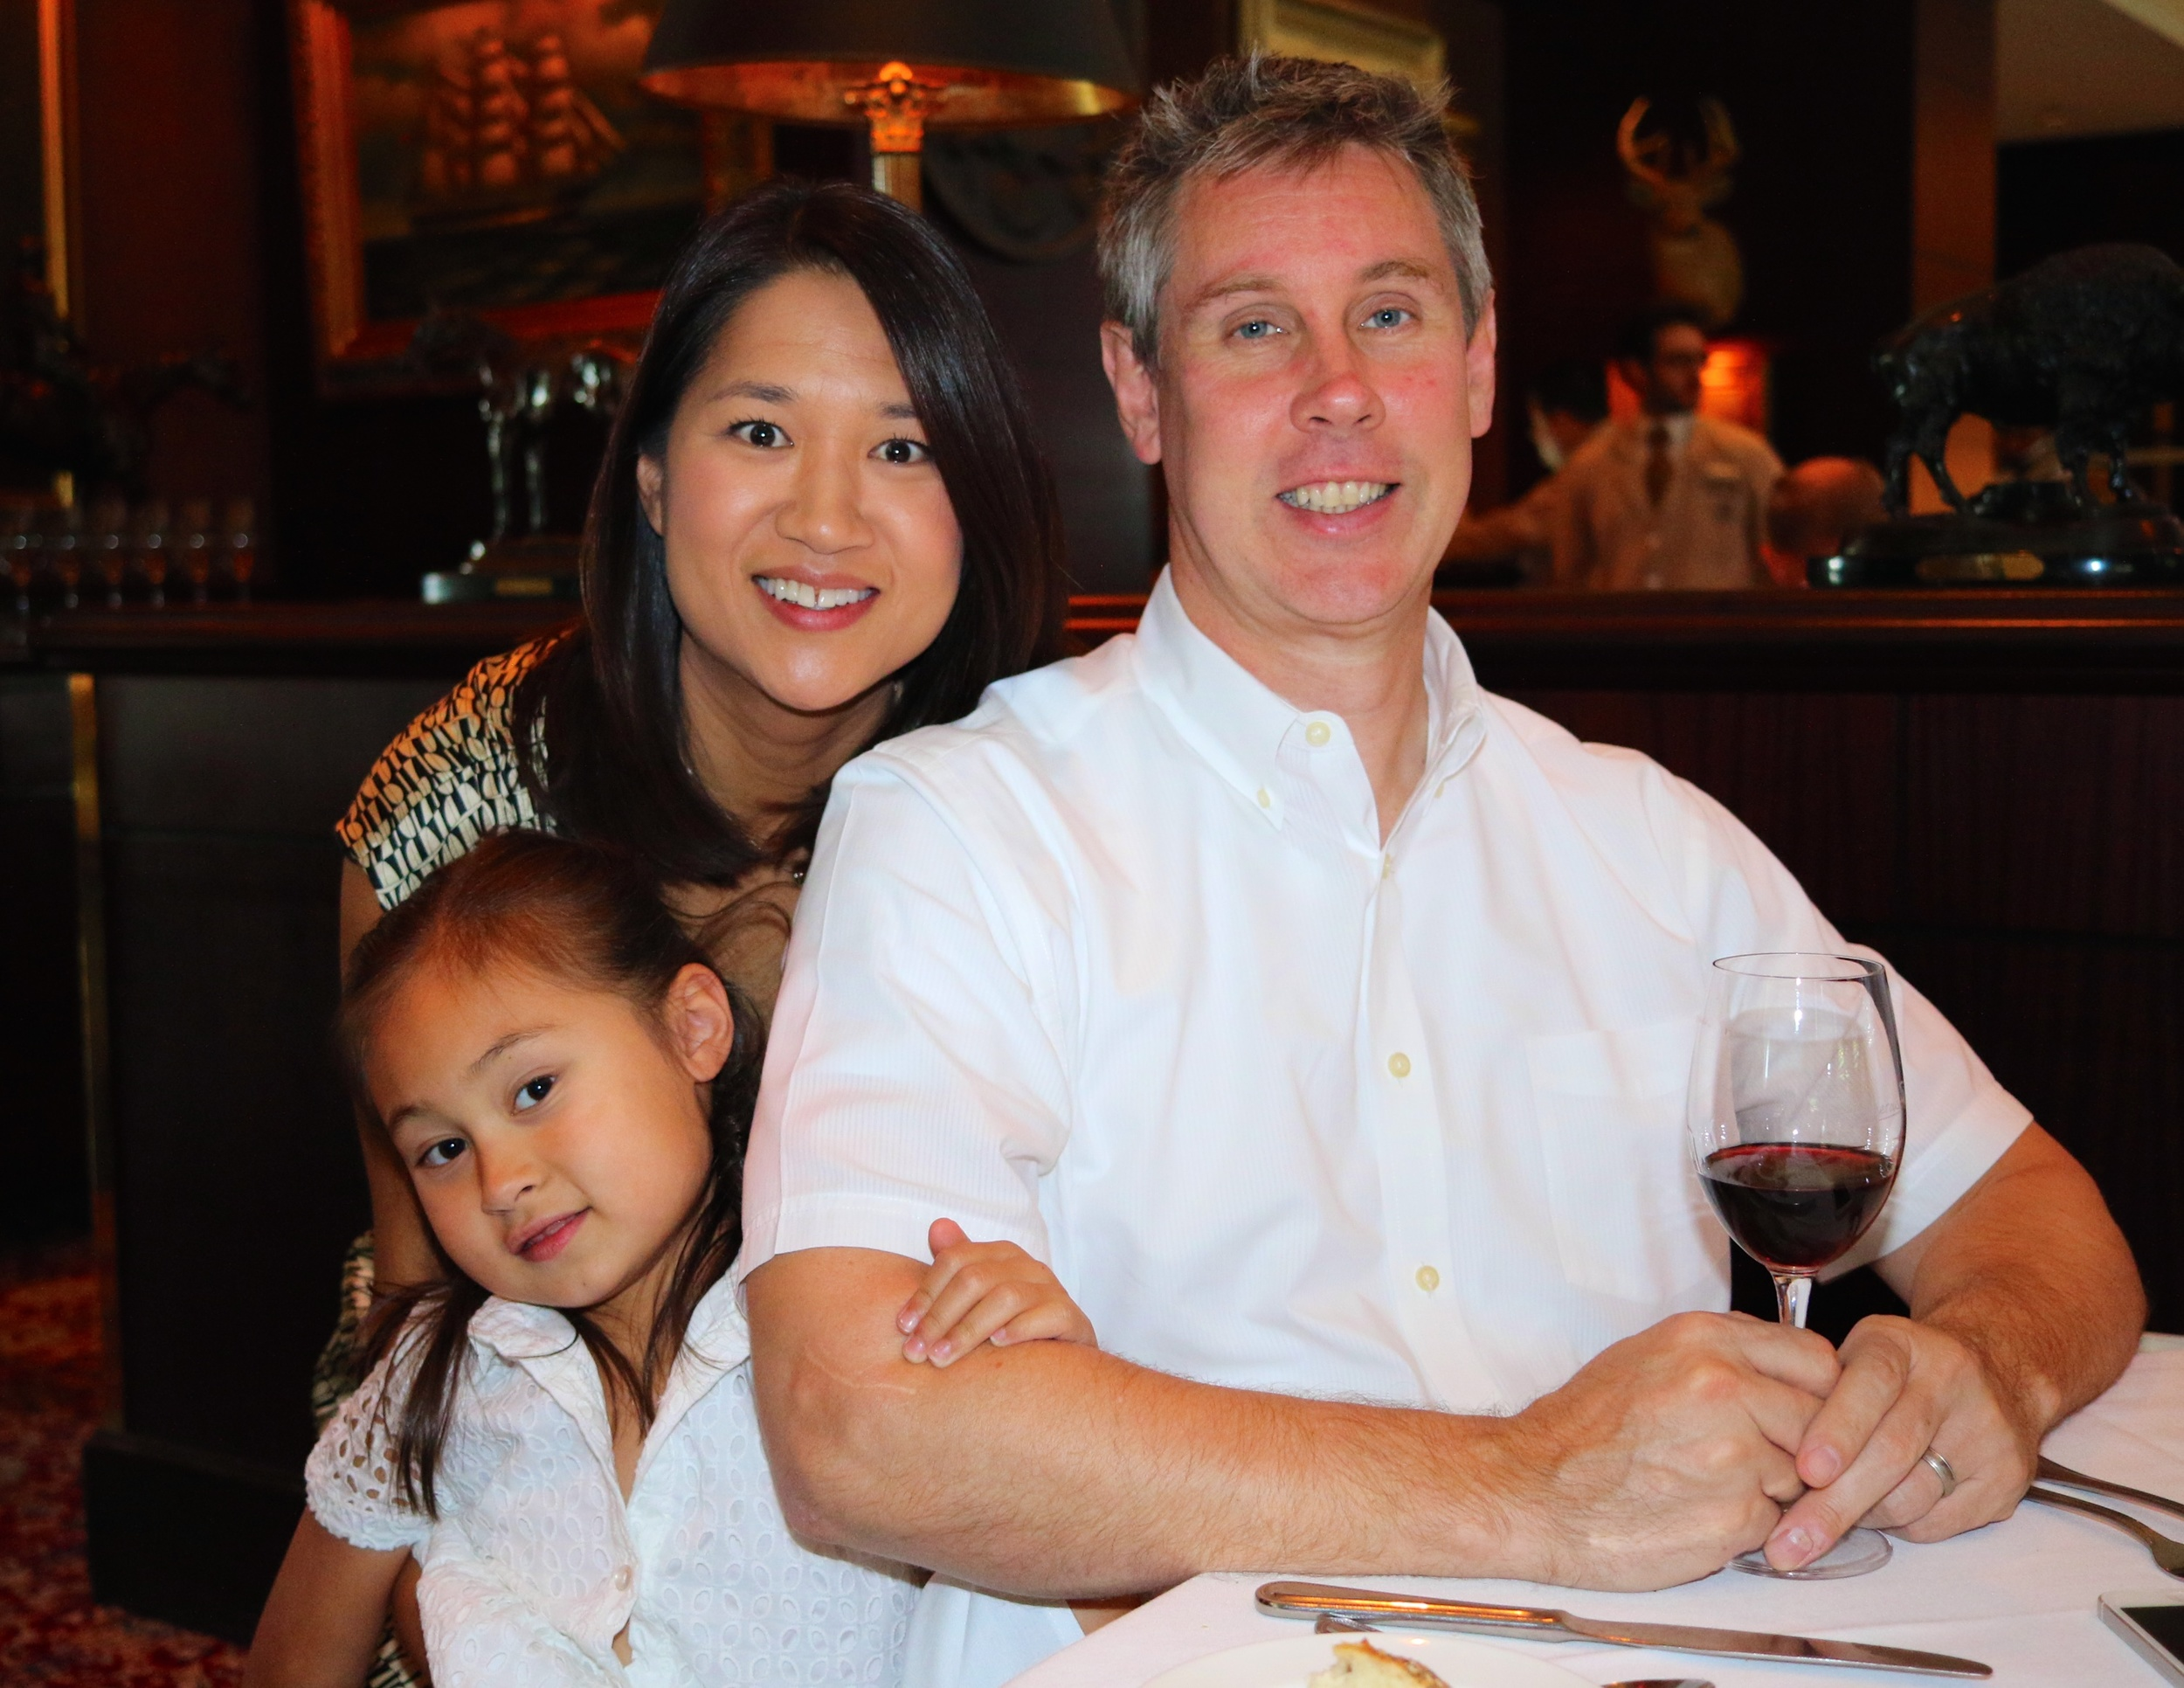 Natalie and Mark Way, and their daughter Josie. Beloved friends, and my second family.